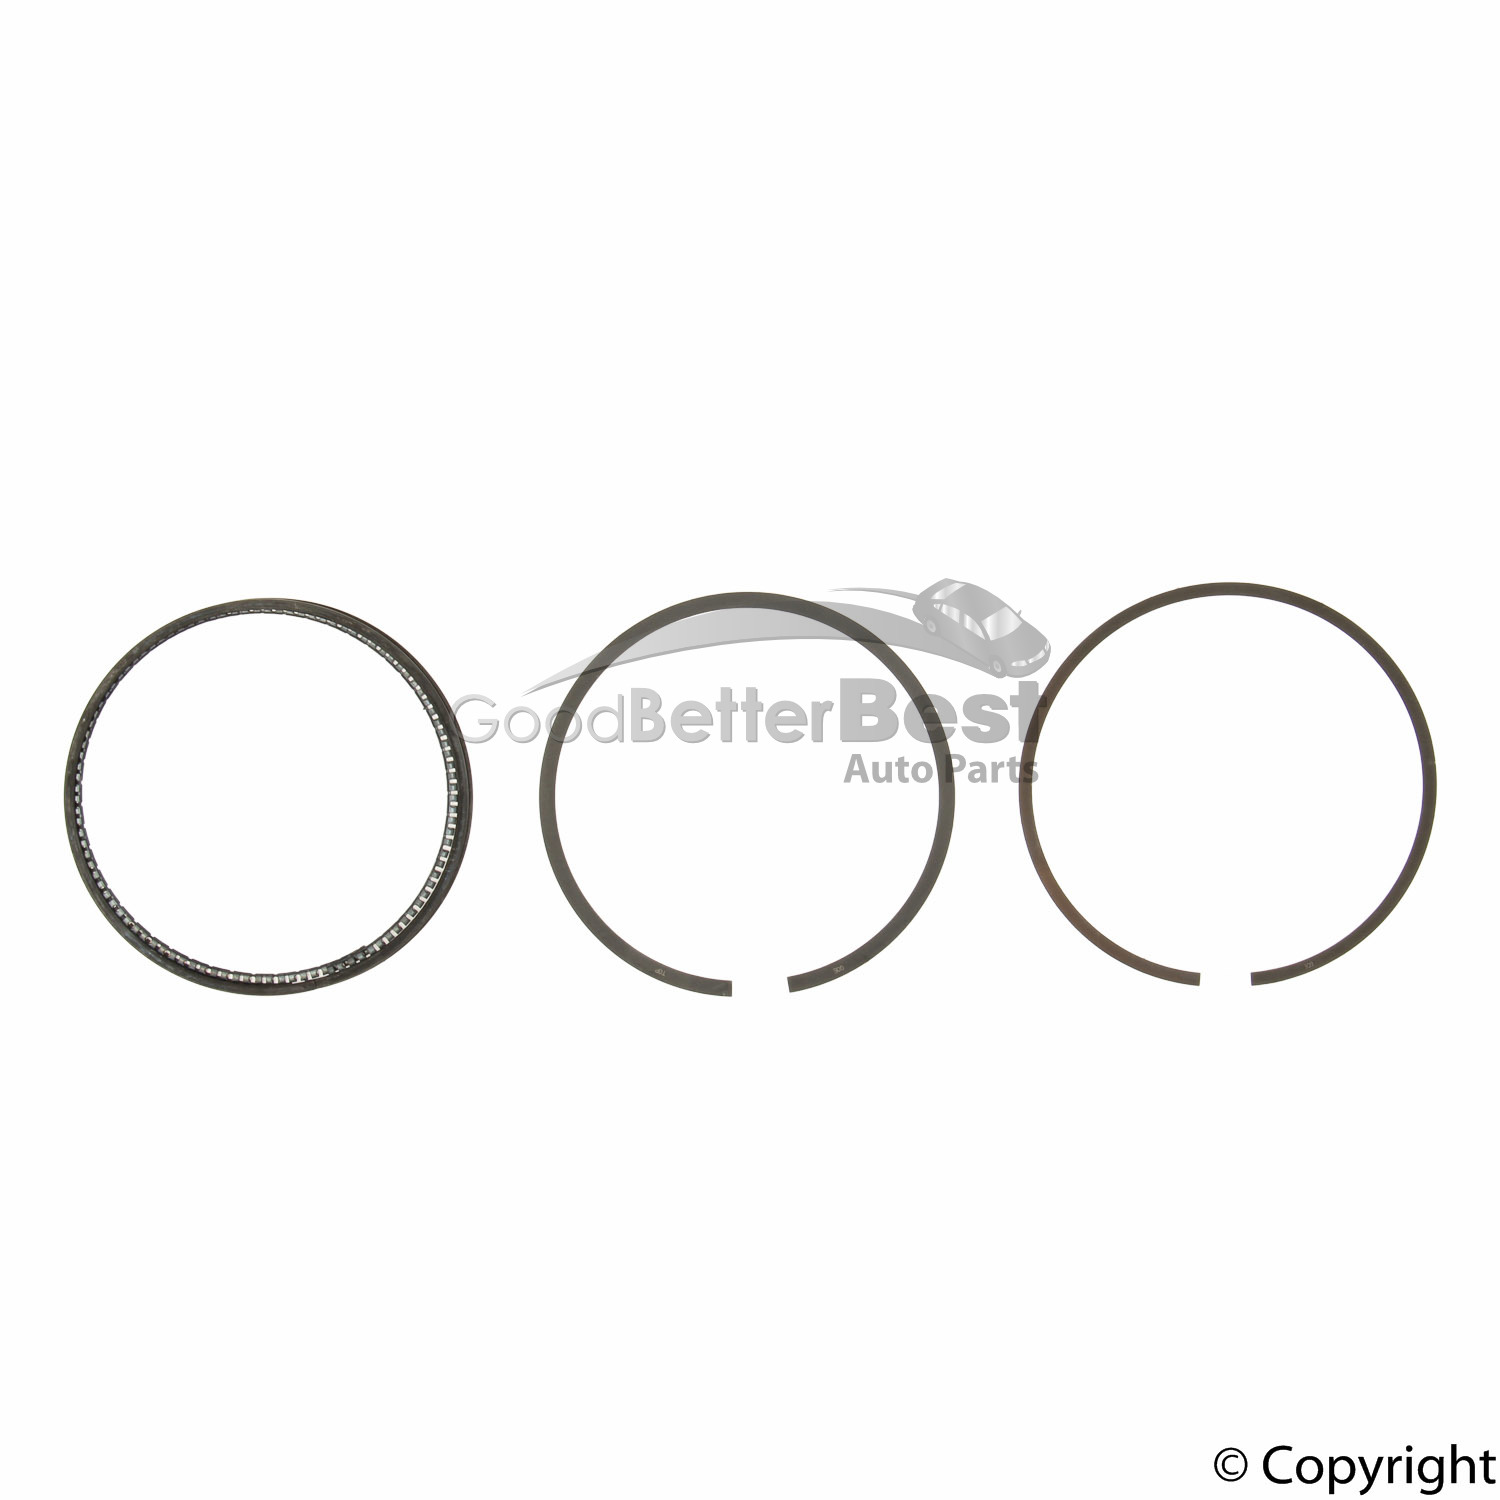 New Goetze Engine Piston Ring Set 0843120000 94810393101